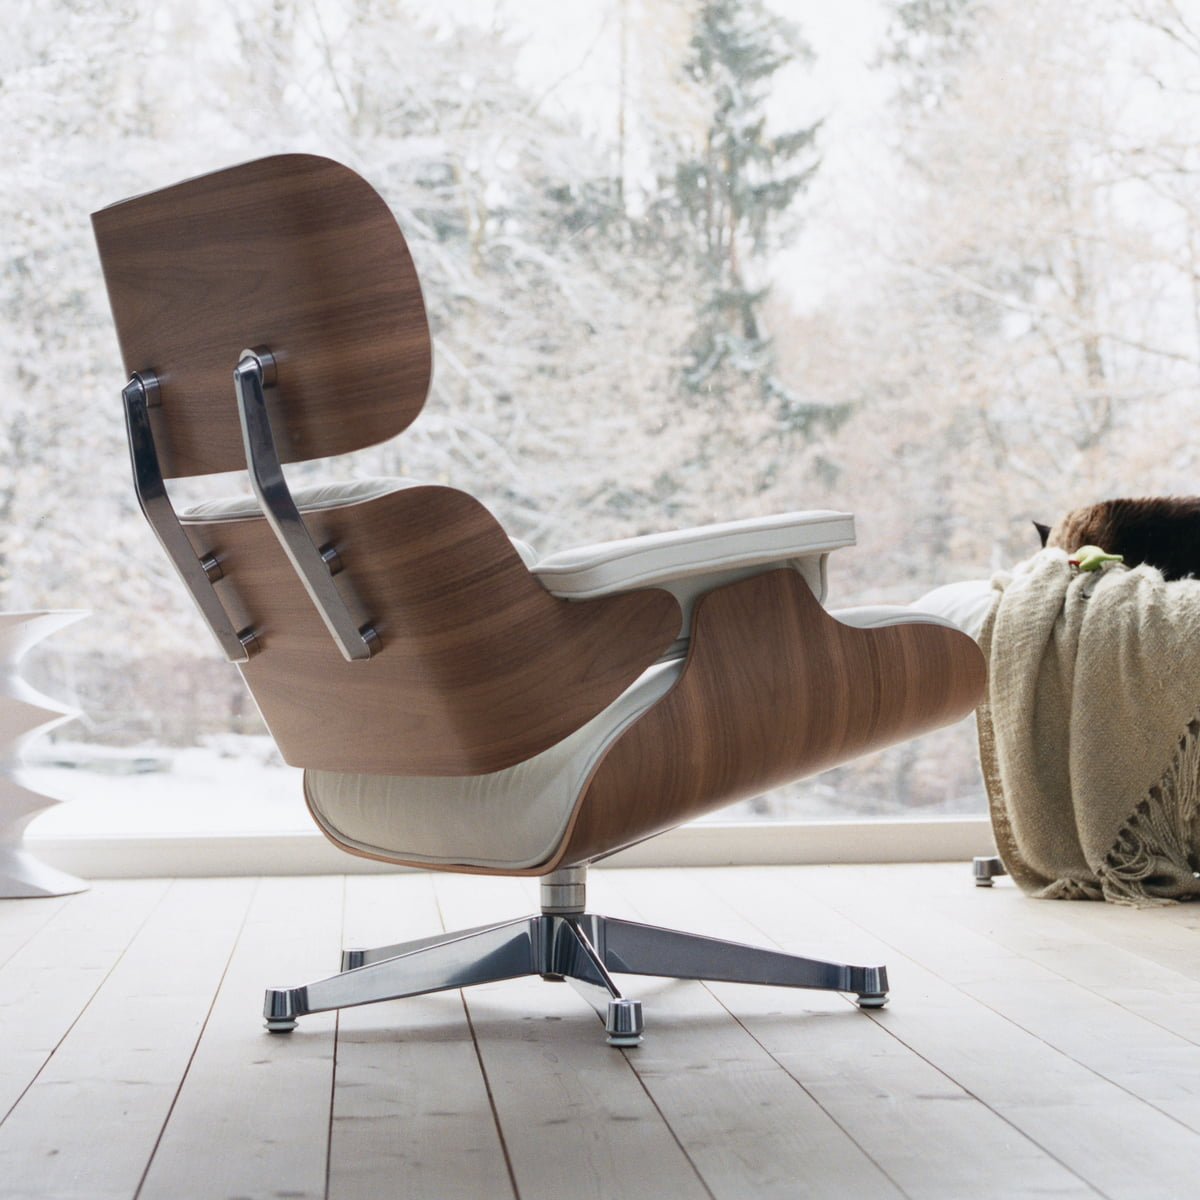 Vitra Lounge Chair in weiß im Wohndesign-Shop